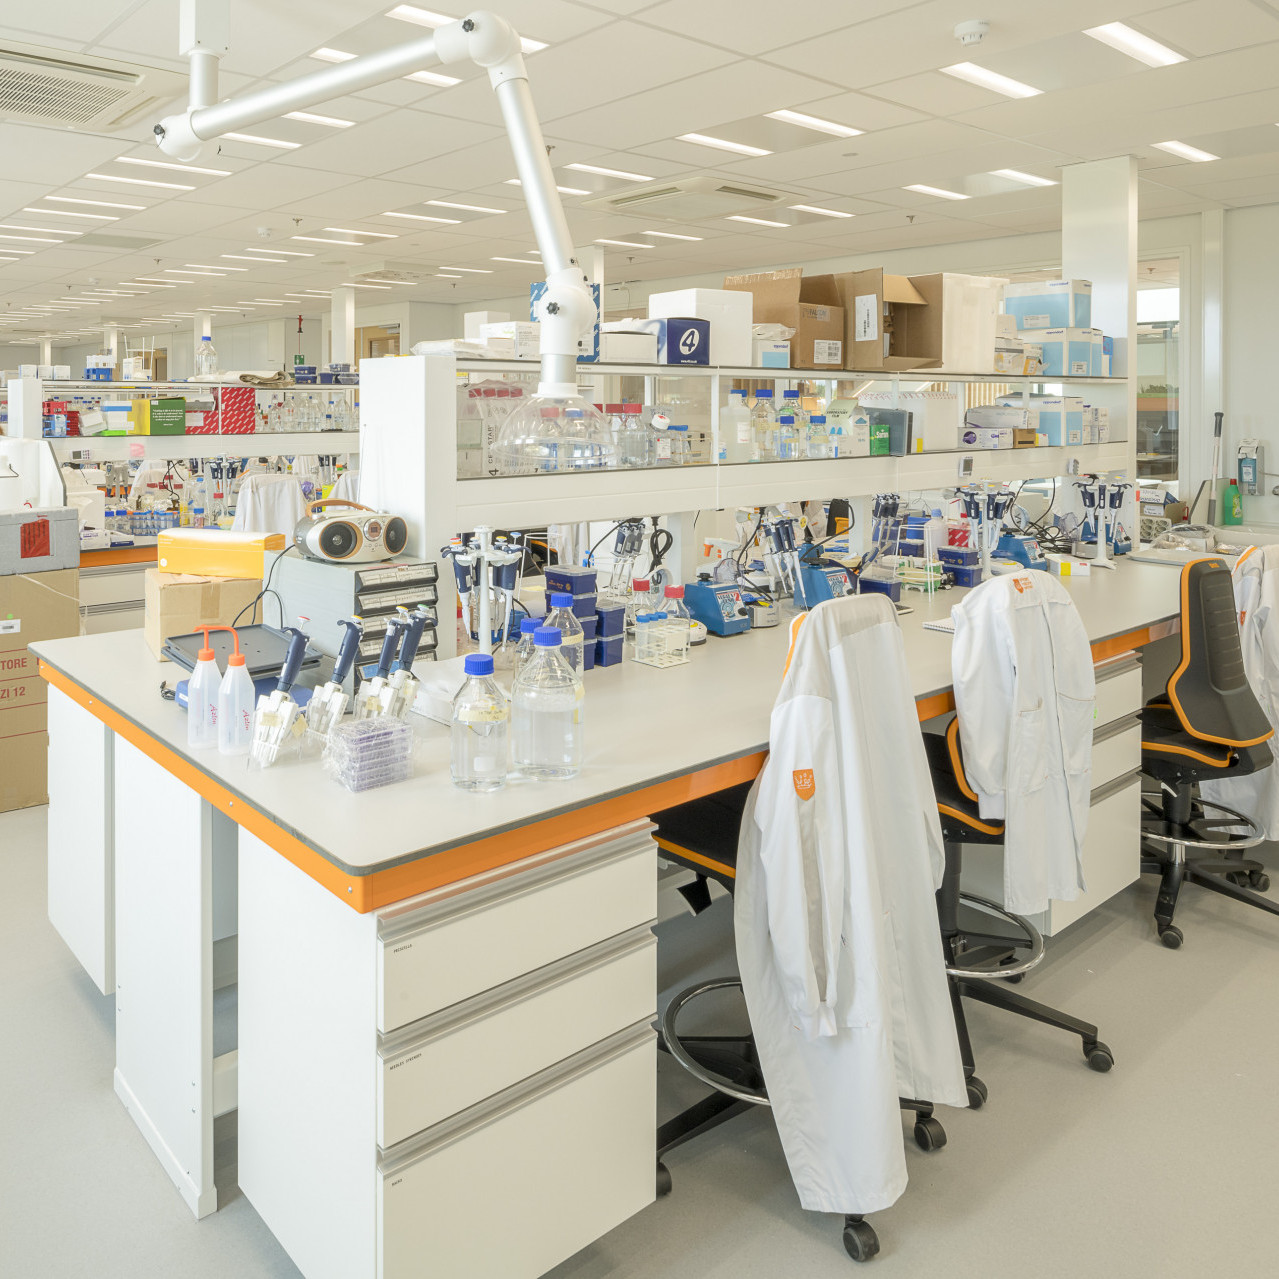 Expansion research department ready in the course of 2019